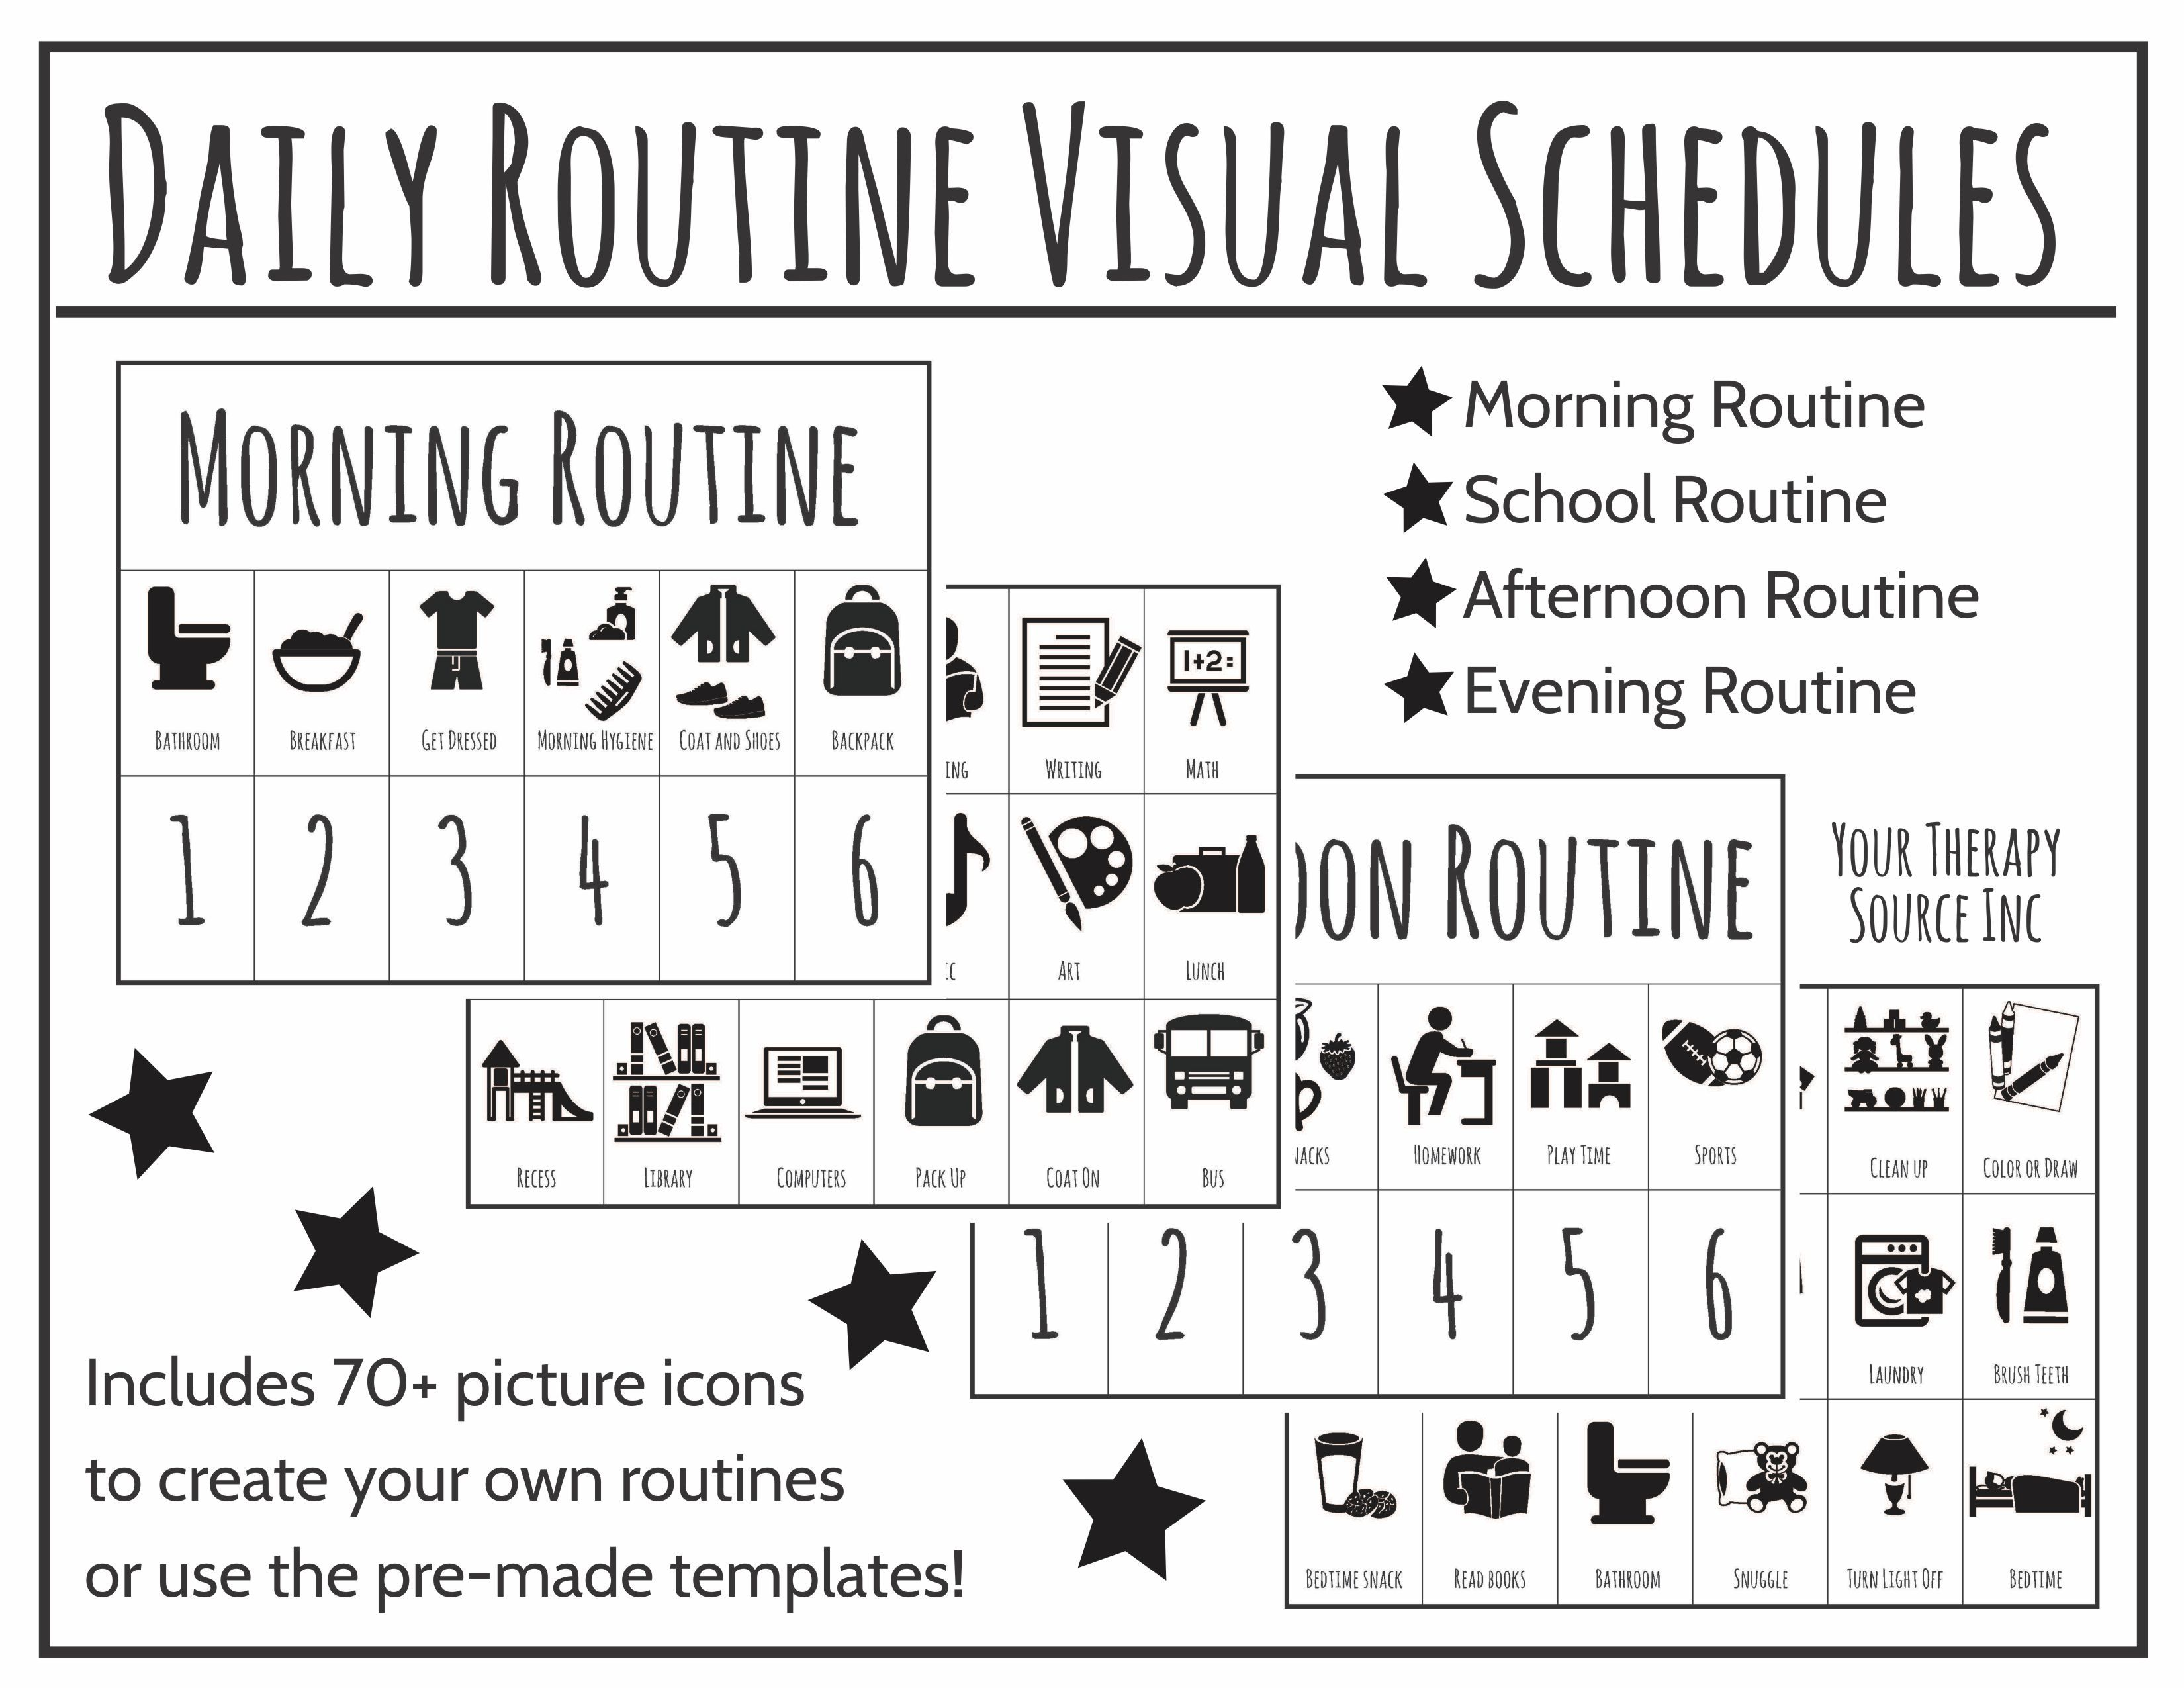 Daily Routine Visual Schedules